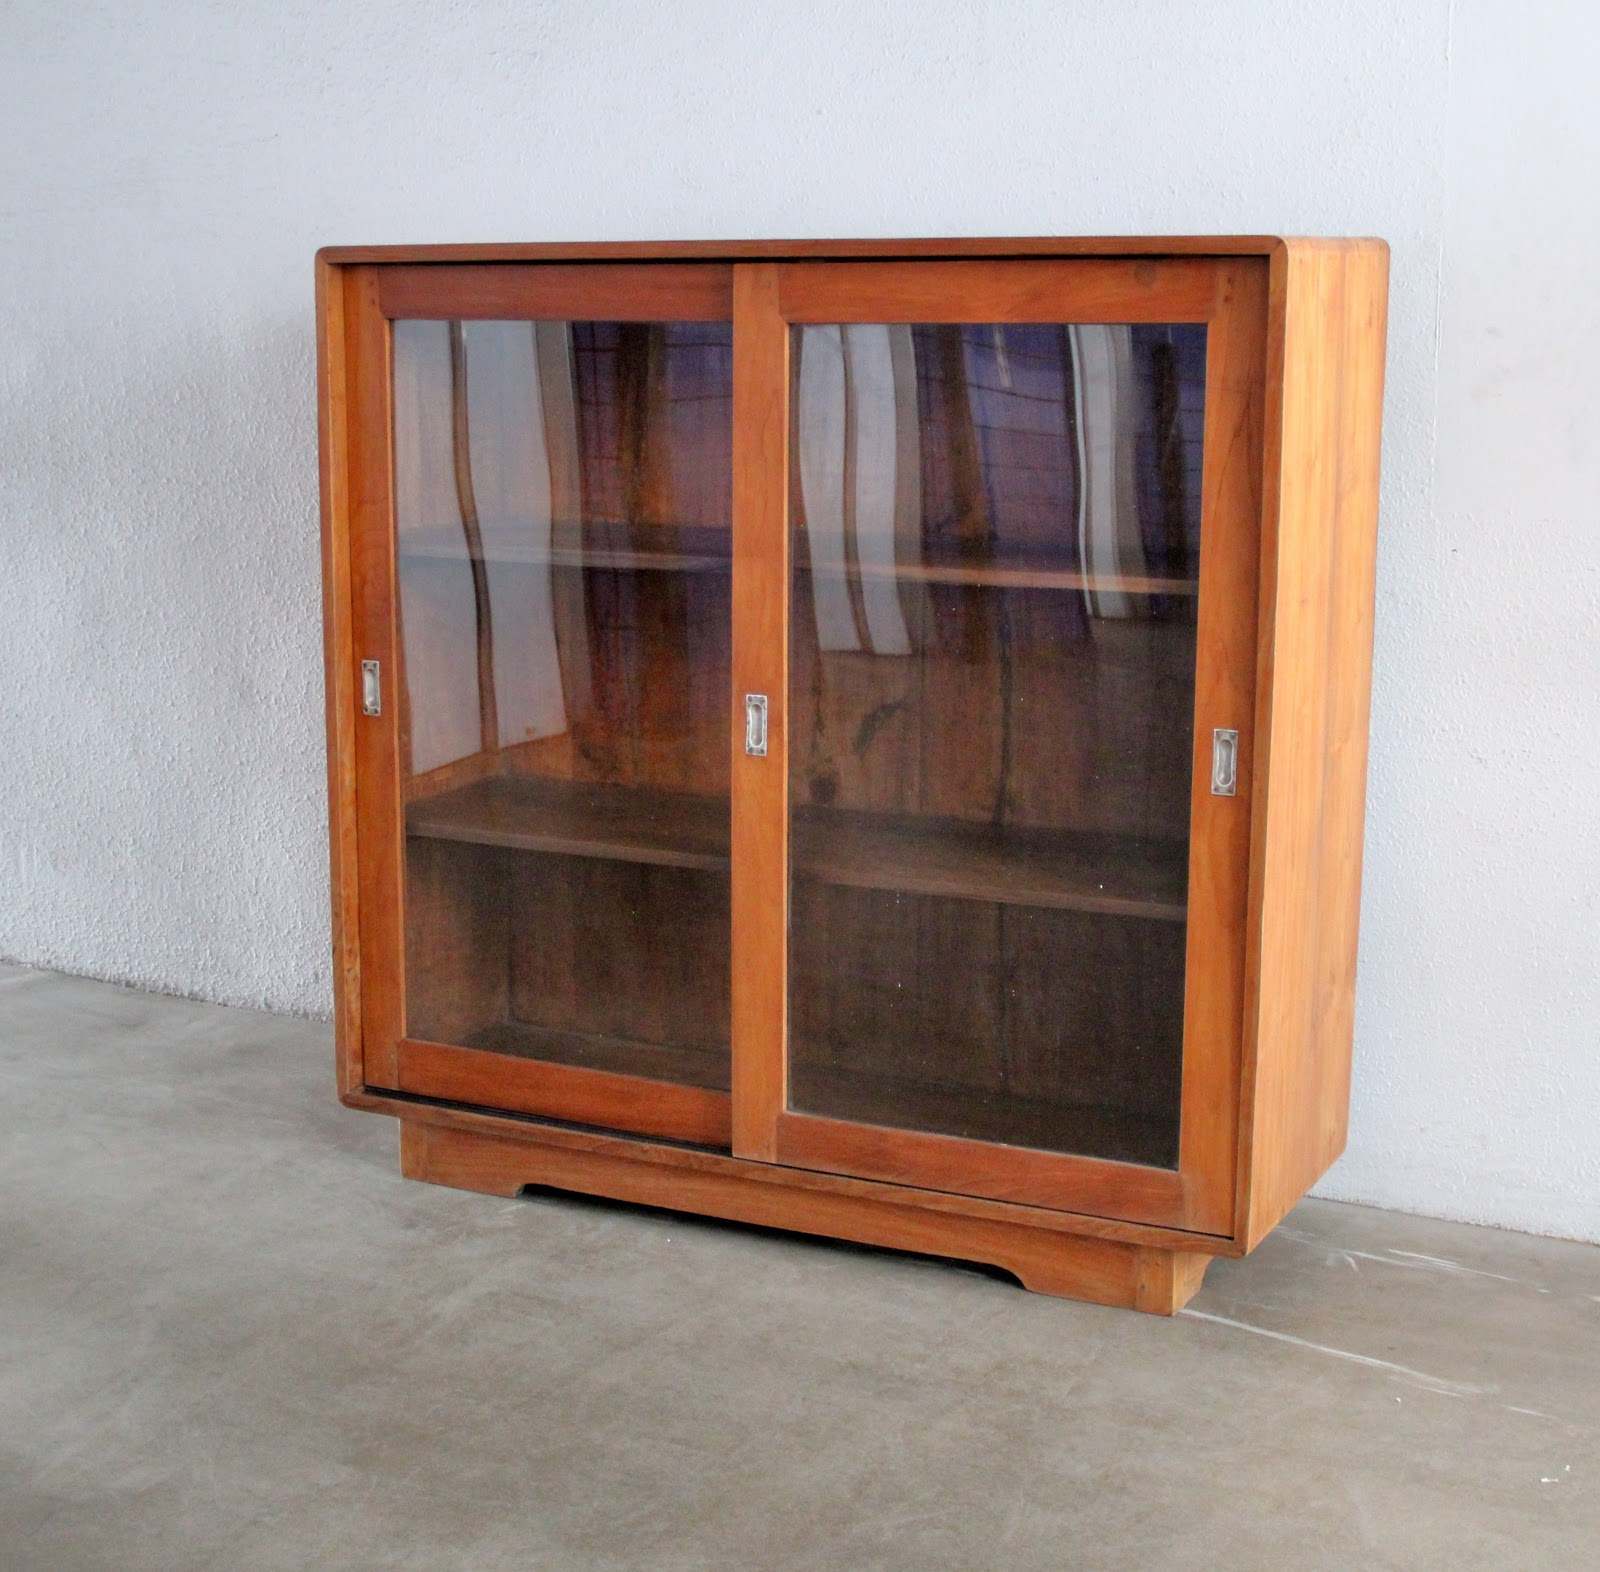 Sliding Doors The Book: VINTAGE SHOWCASES AND DISPLAY CABINETS